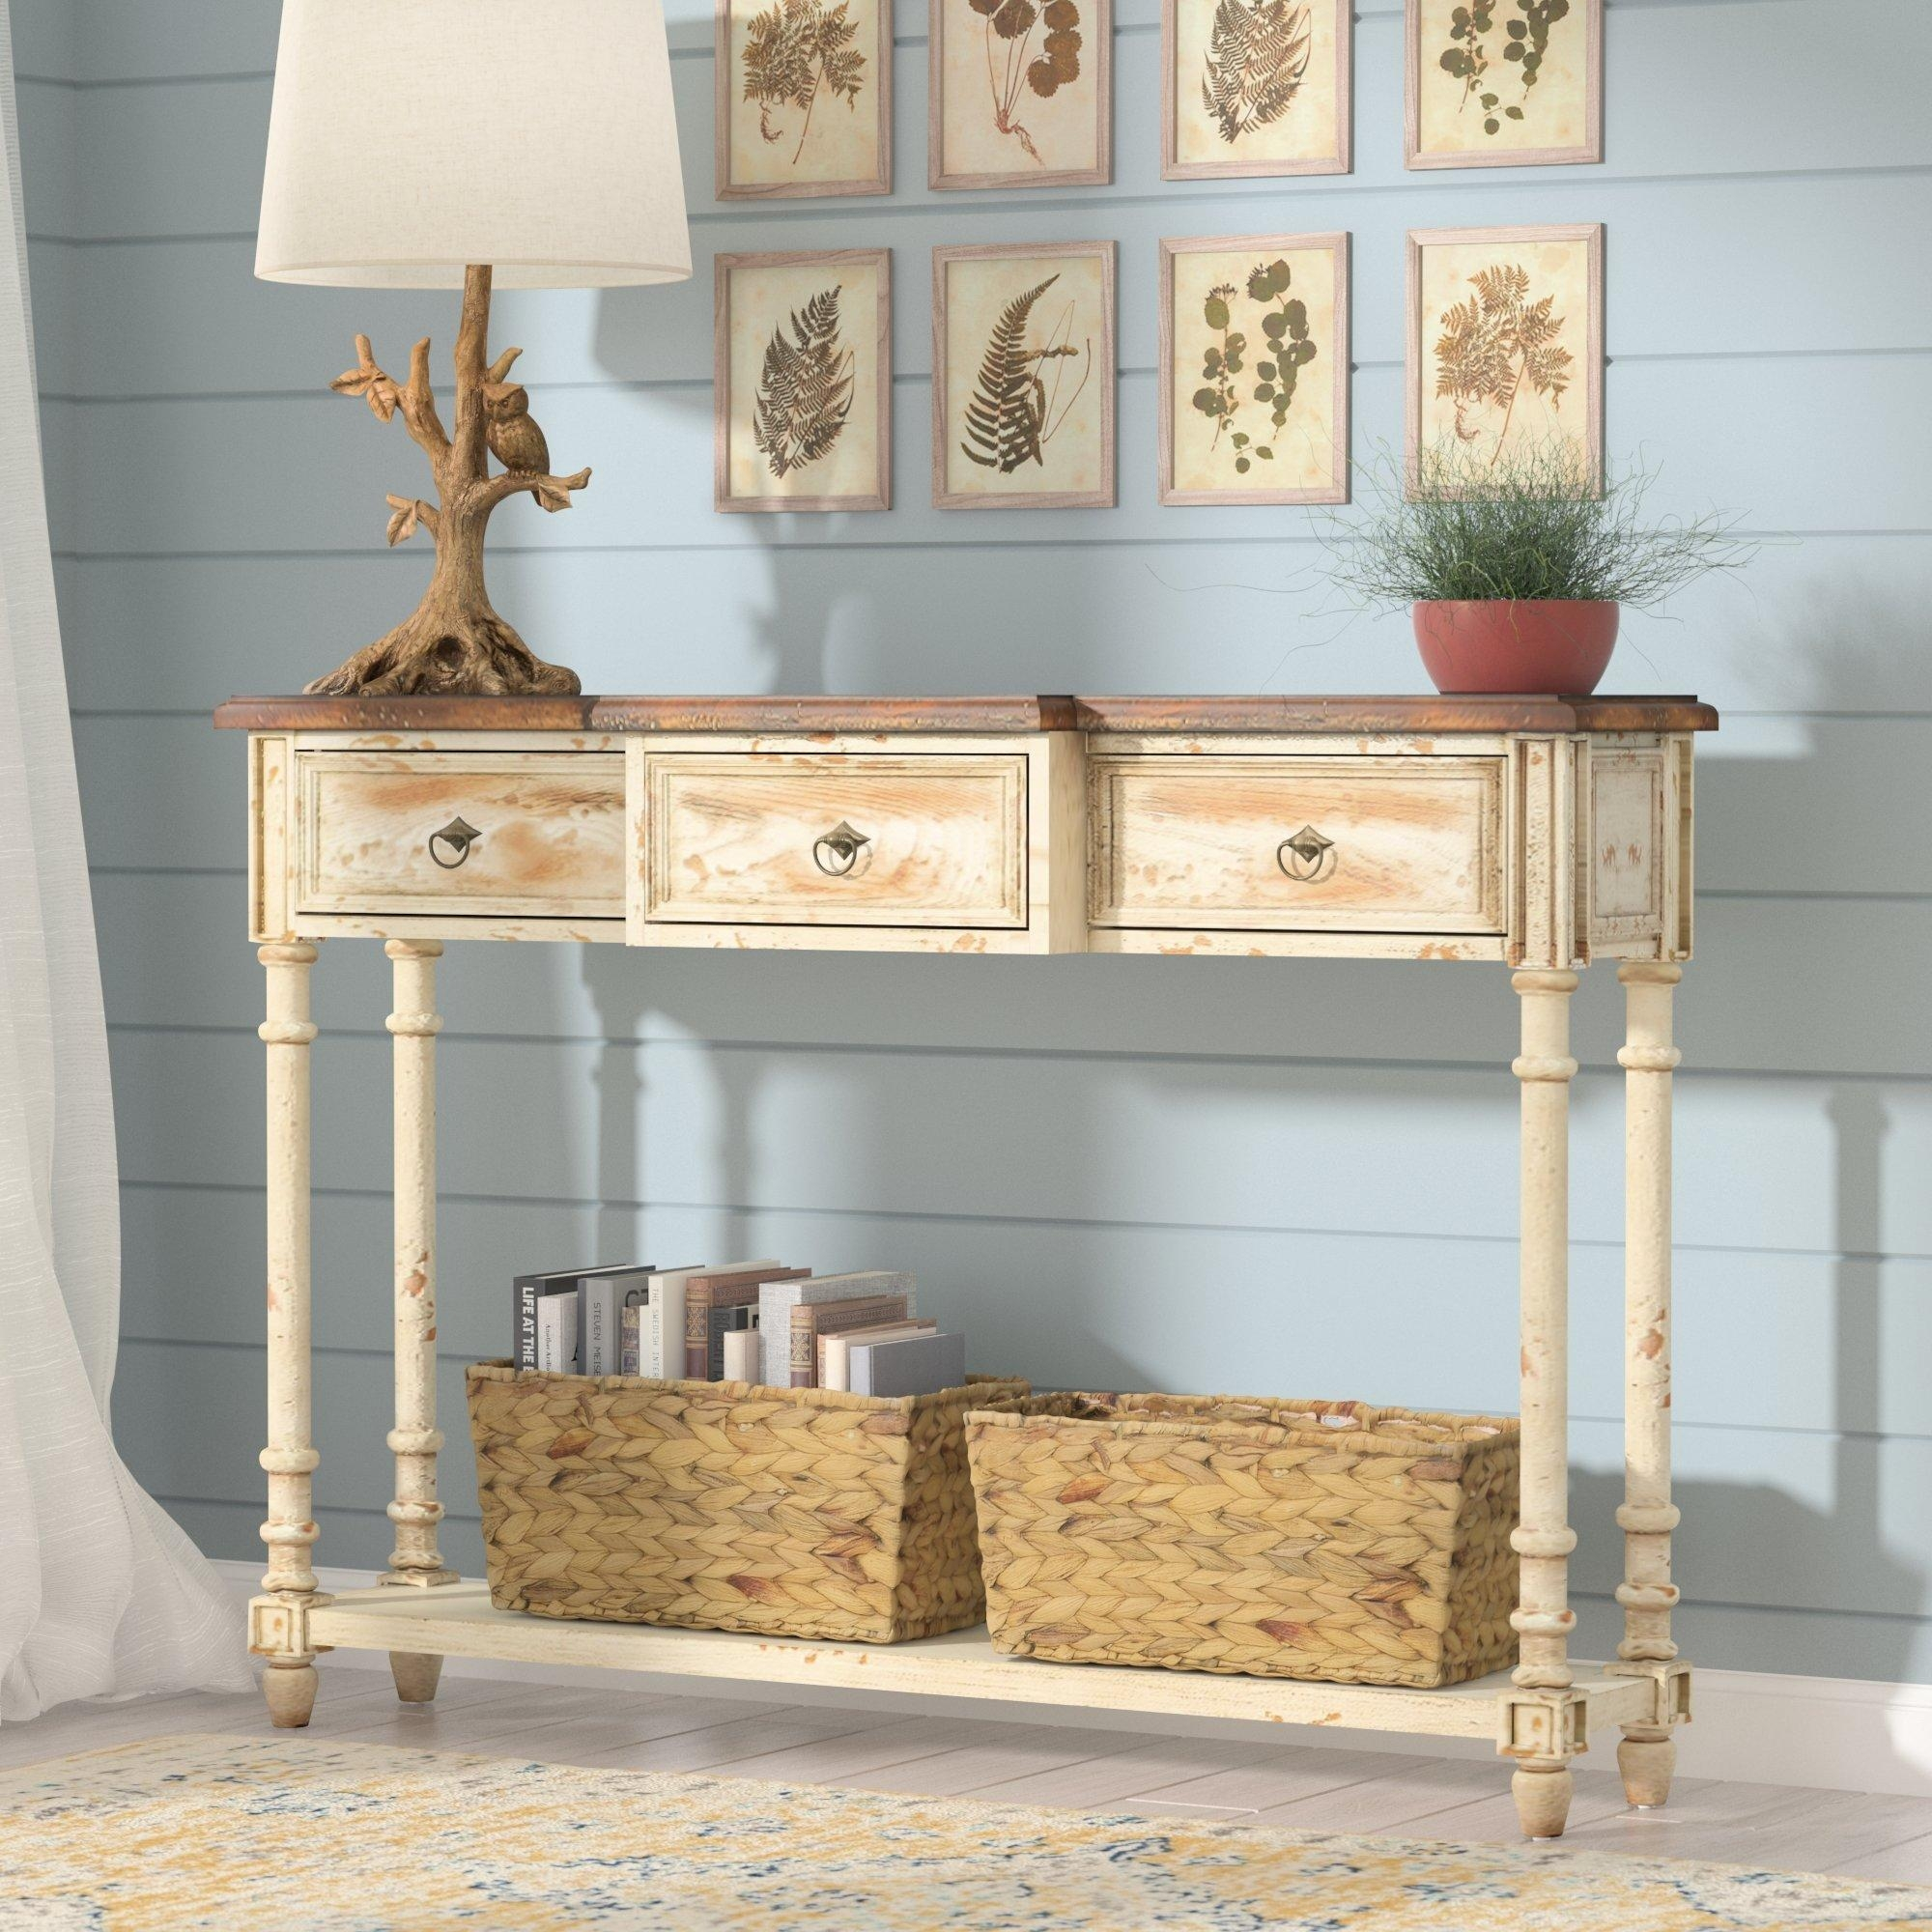 Cottage Sofa Table | Tehranmix Decoration Throughout Country Sofa Tables (View 20 of 20)